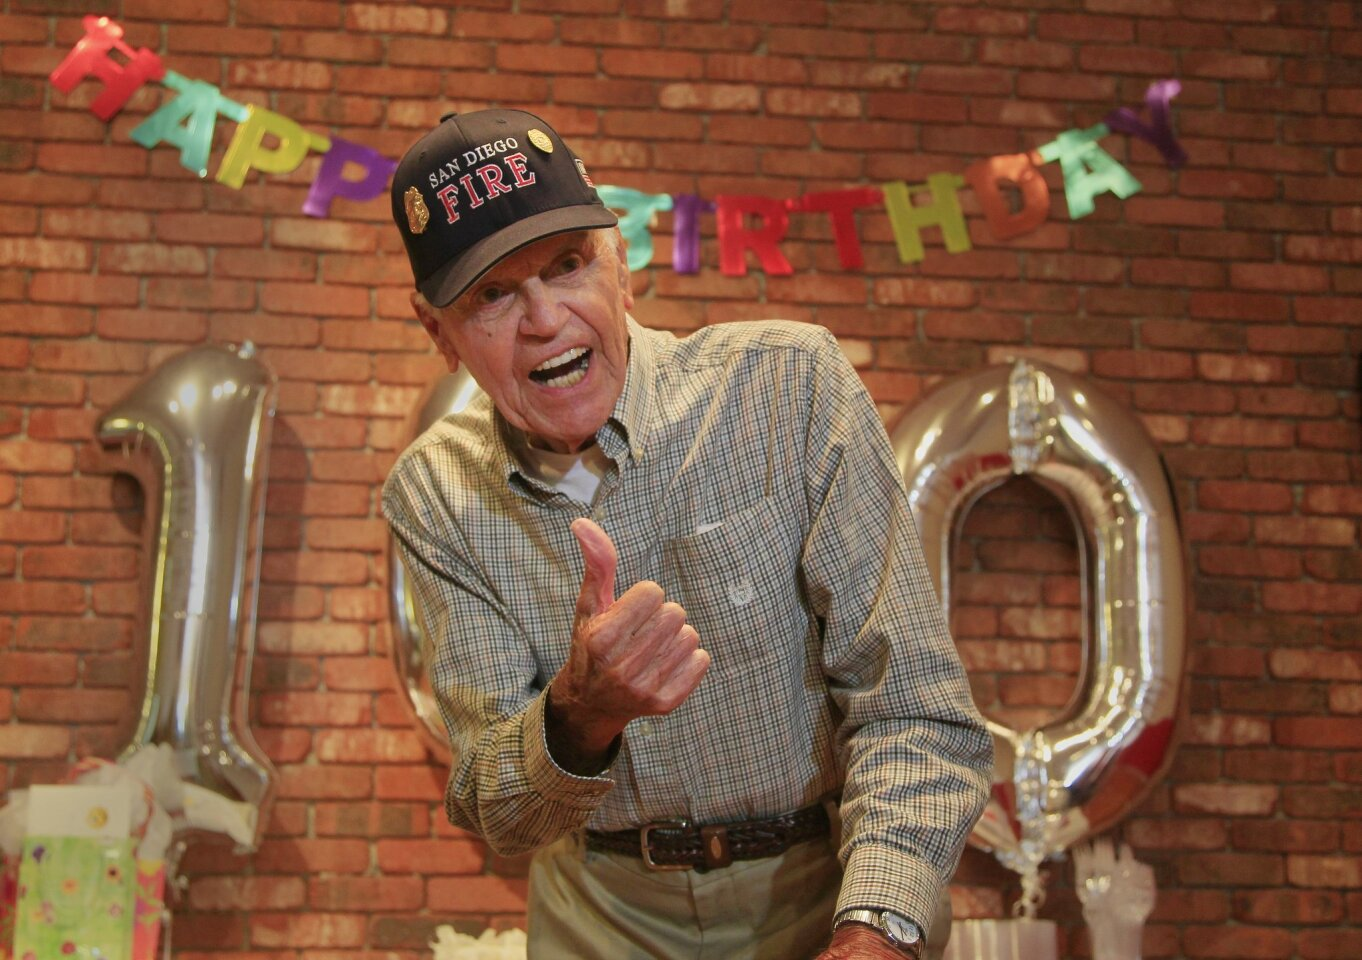 Retired Firefighter's 100th Birthday